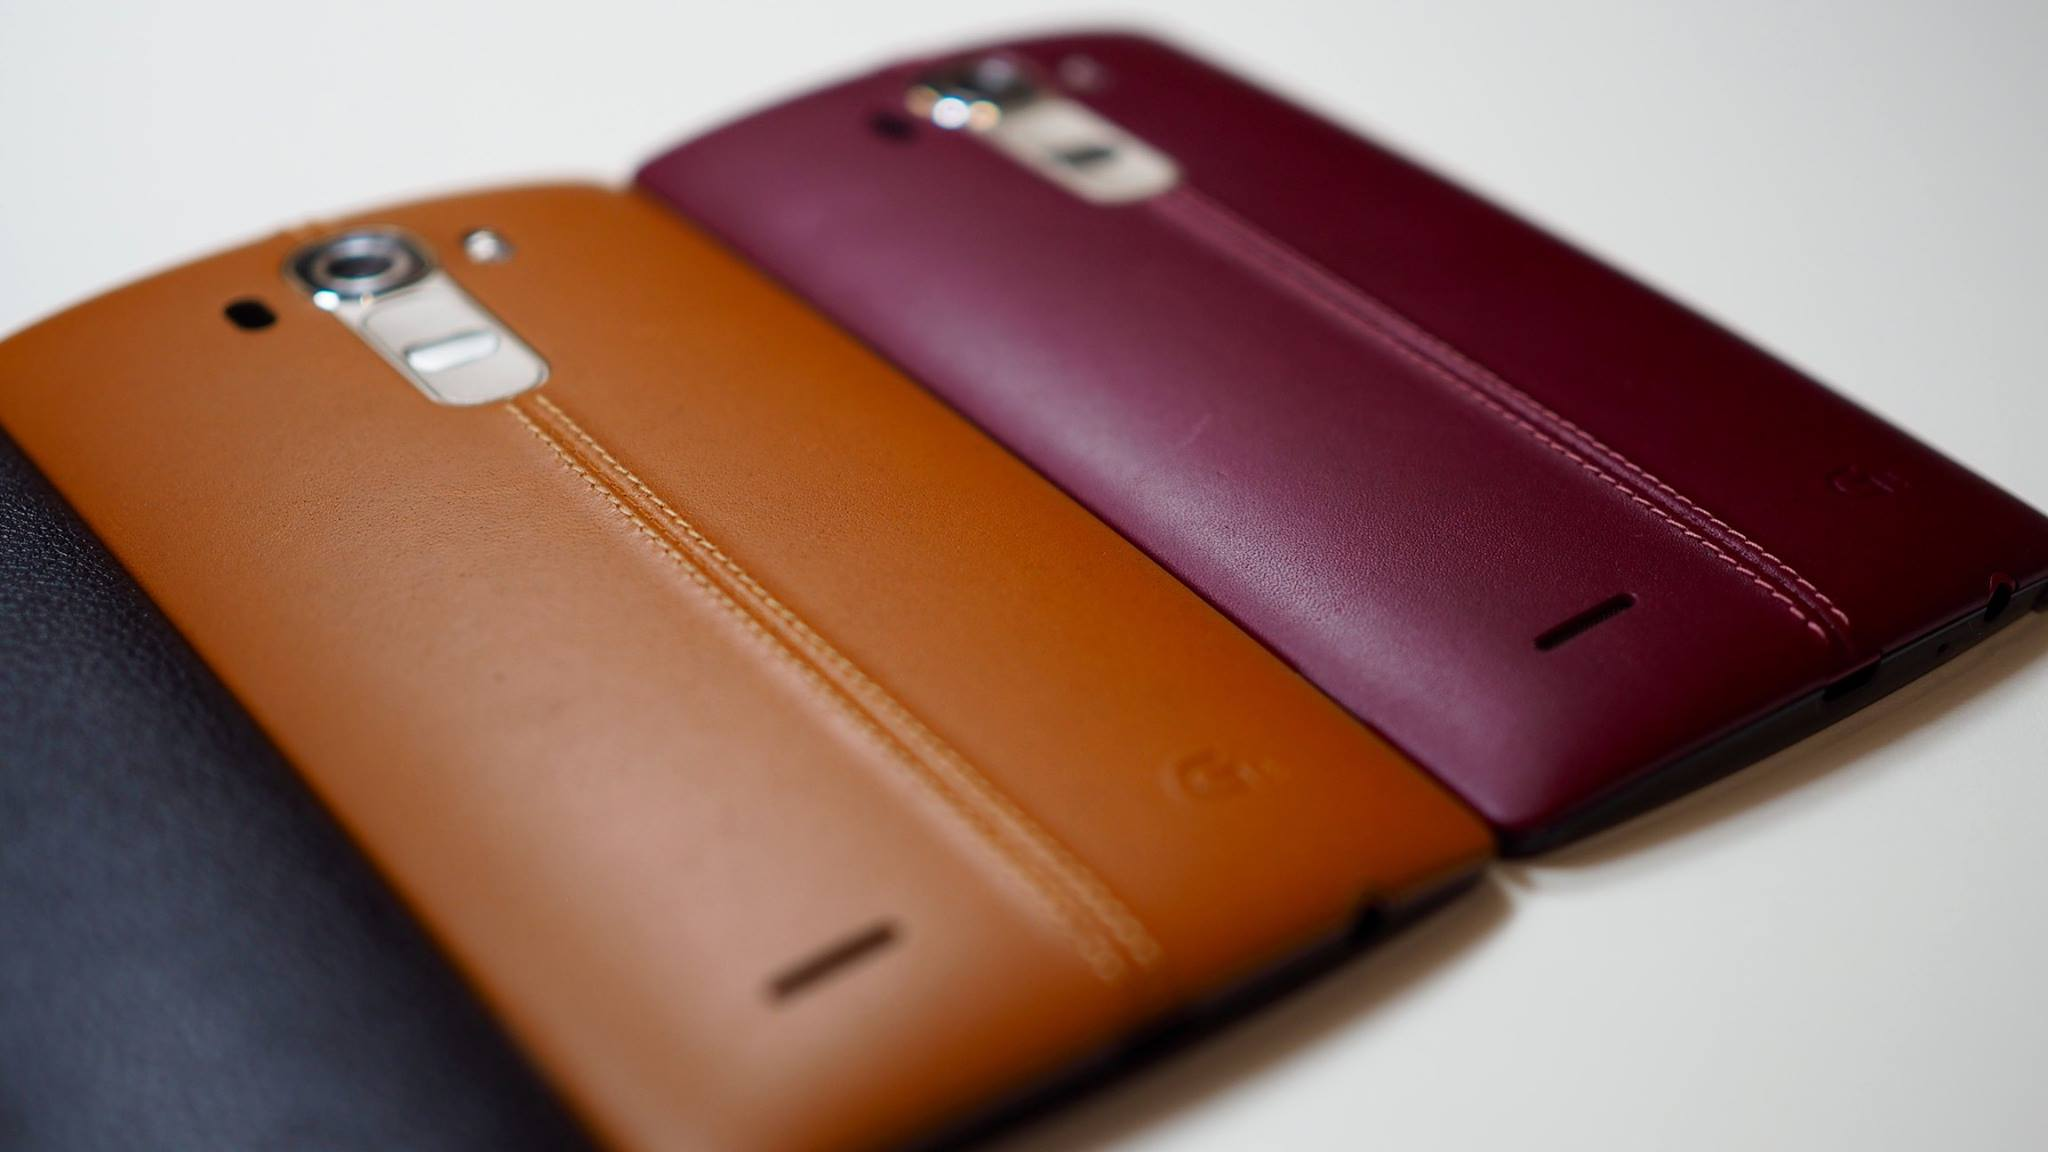 LG-G4-official-images (4)